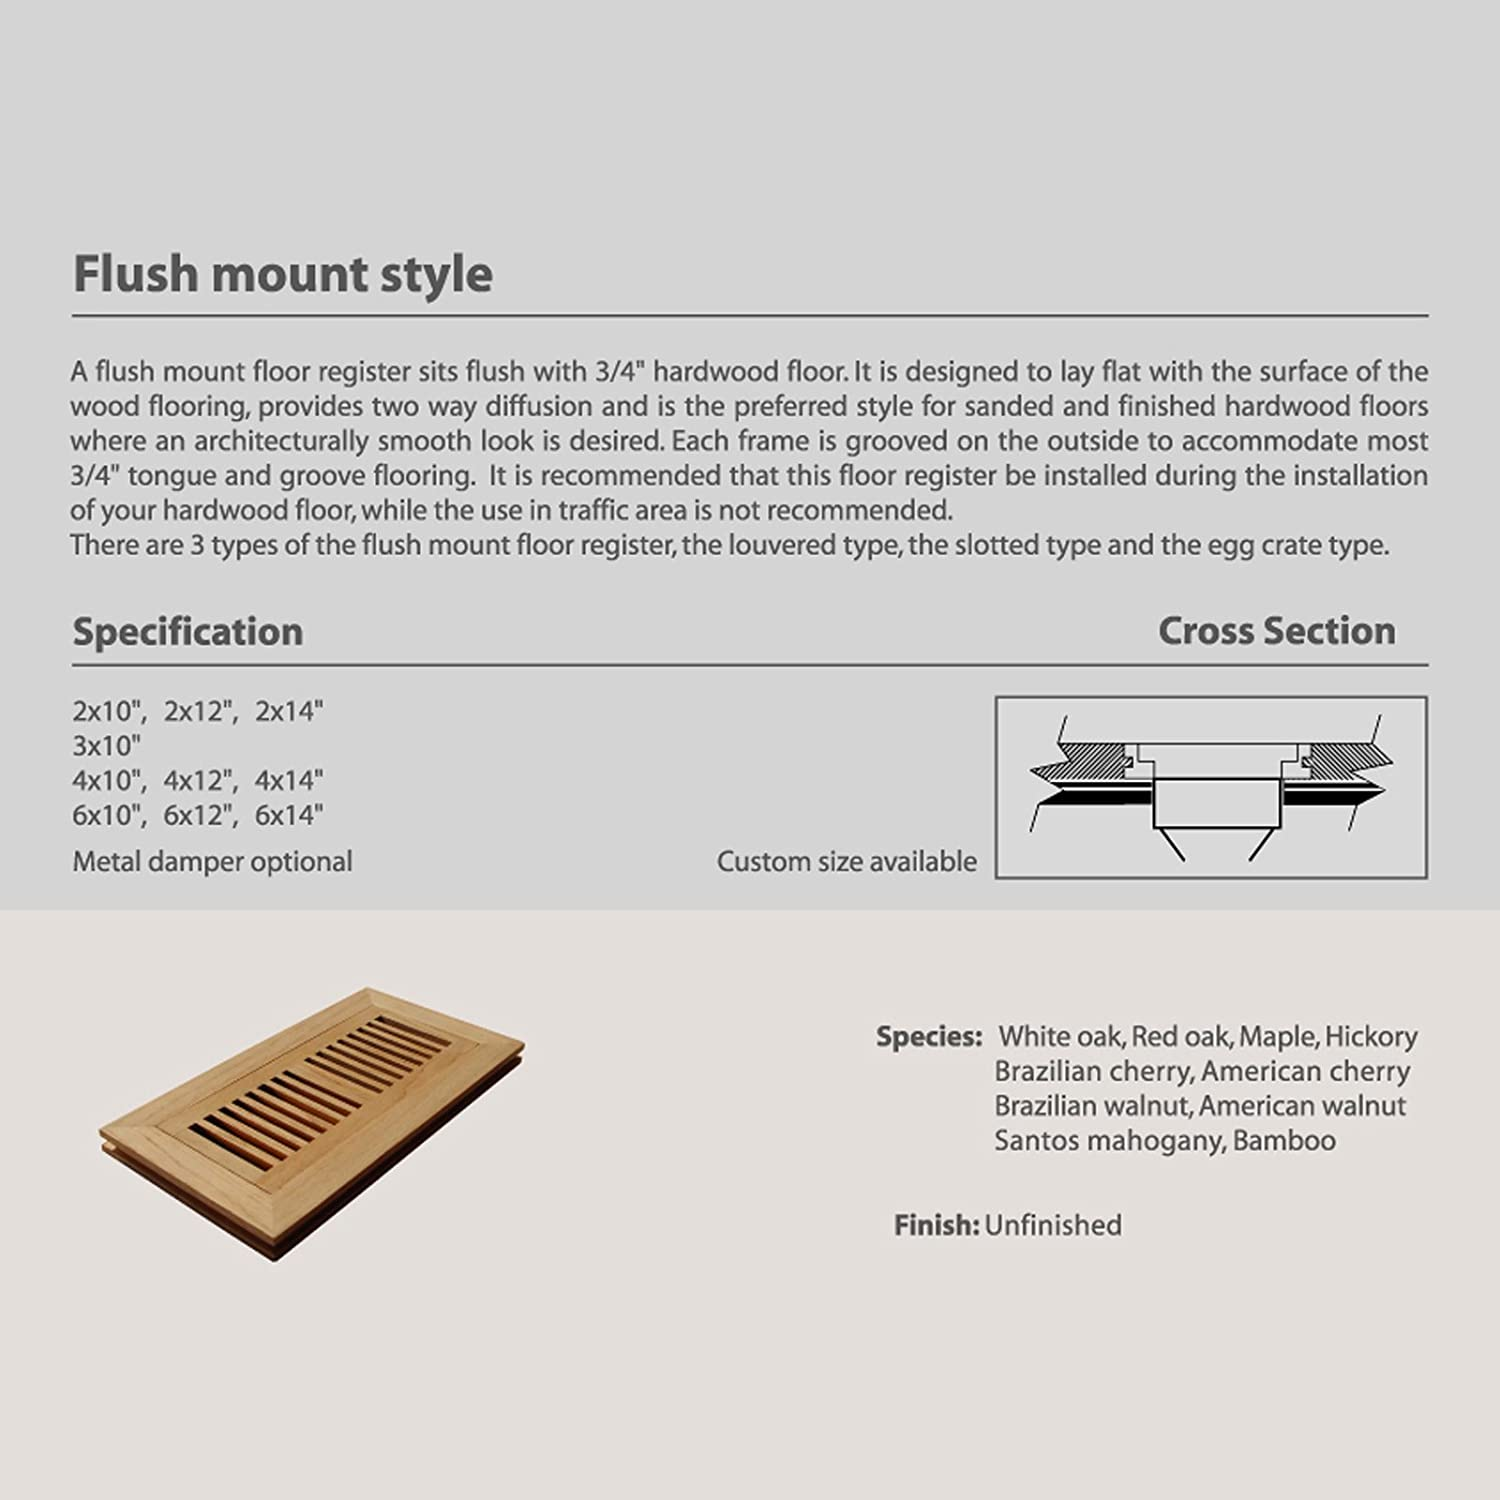 Flush Mount Floor Register Bamboo Carpet Review